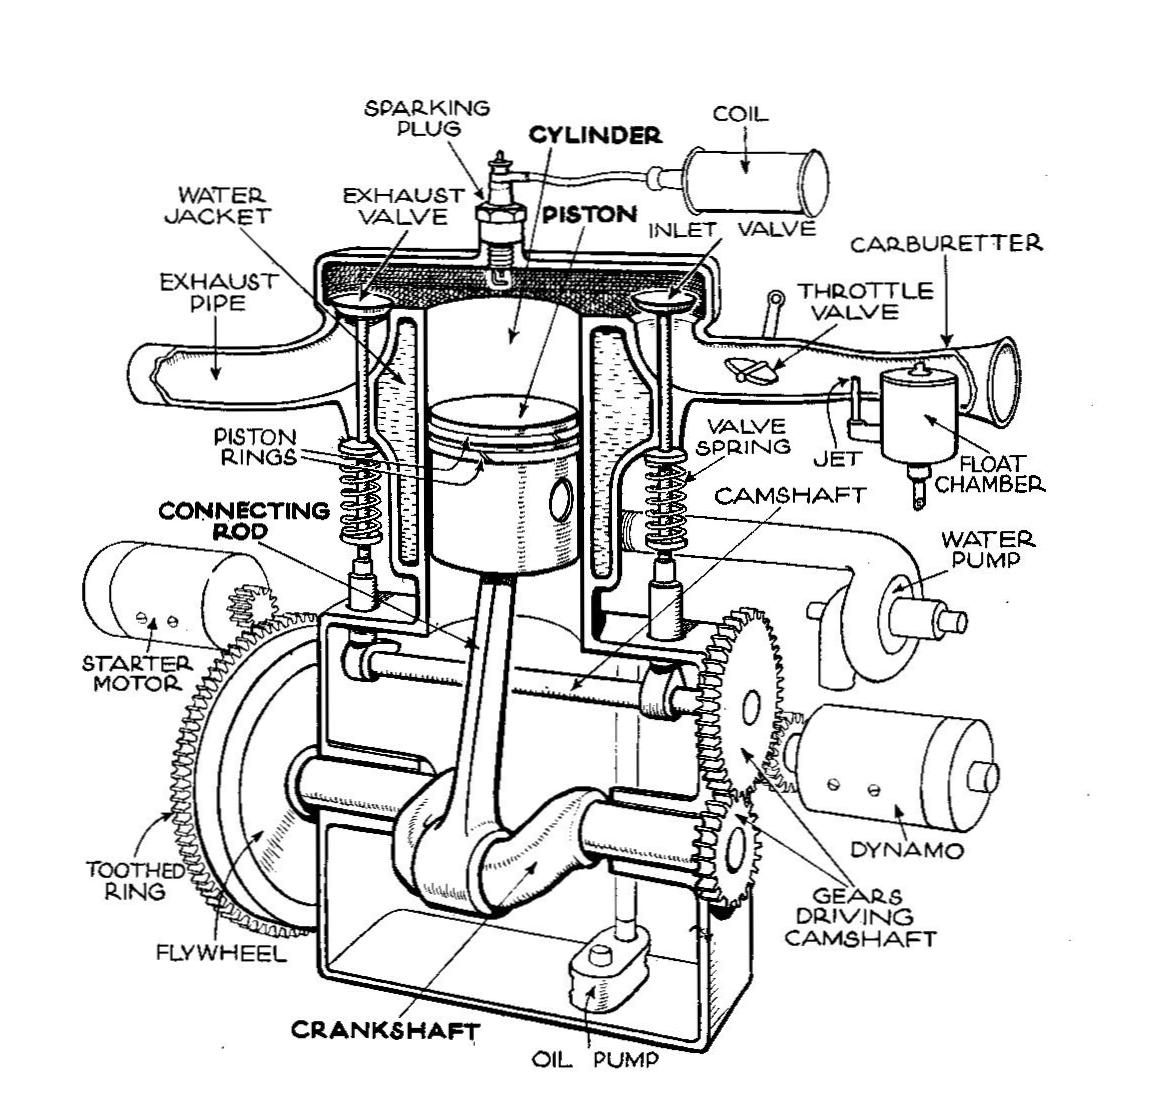 Gm 2 Engine Parts Diagram Wiring Diagrams 350 Chevy 4 Twin Cam Library Rh 34 Codingcommunity De 3800